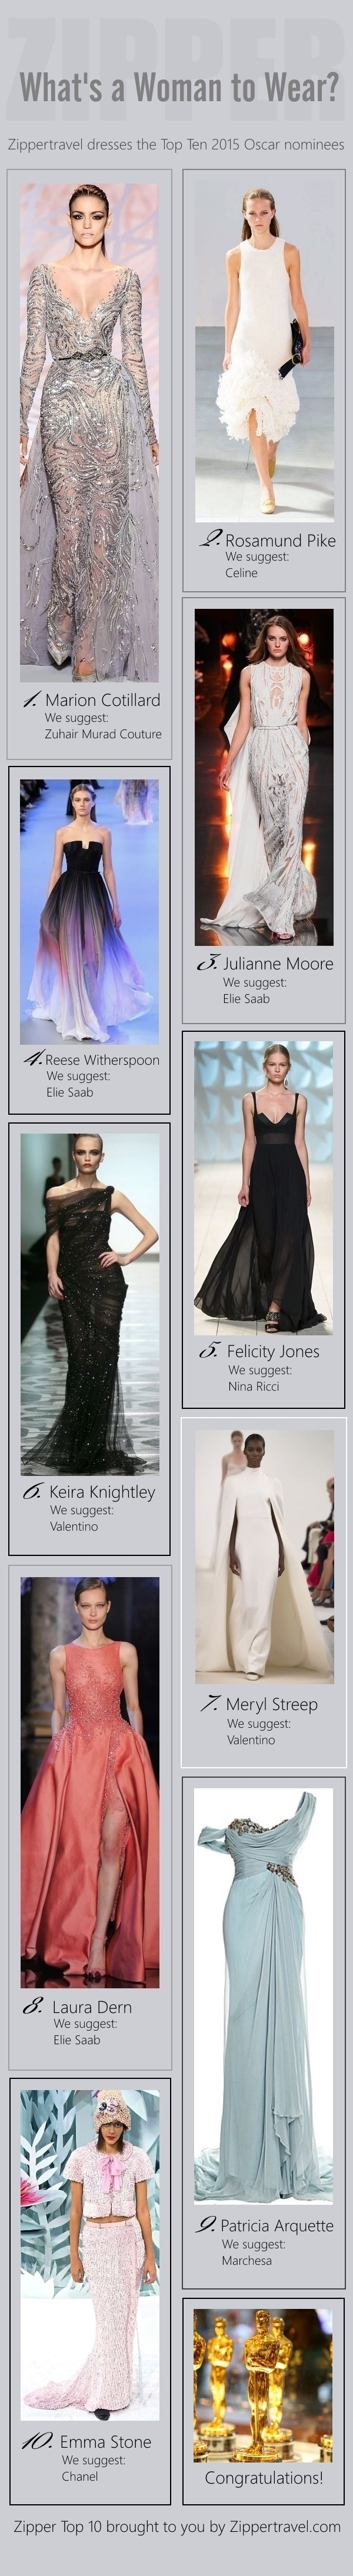 Osacr nominees gown suggestions